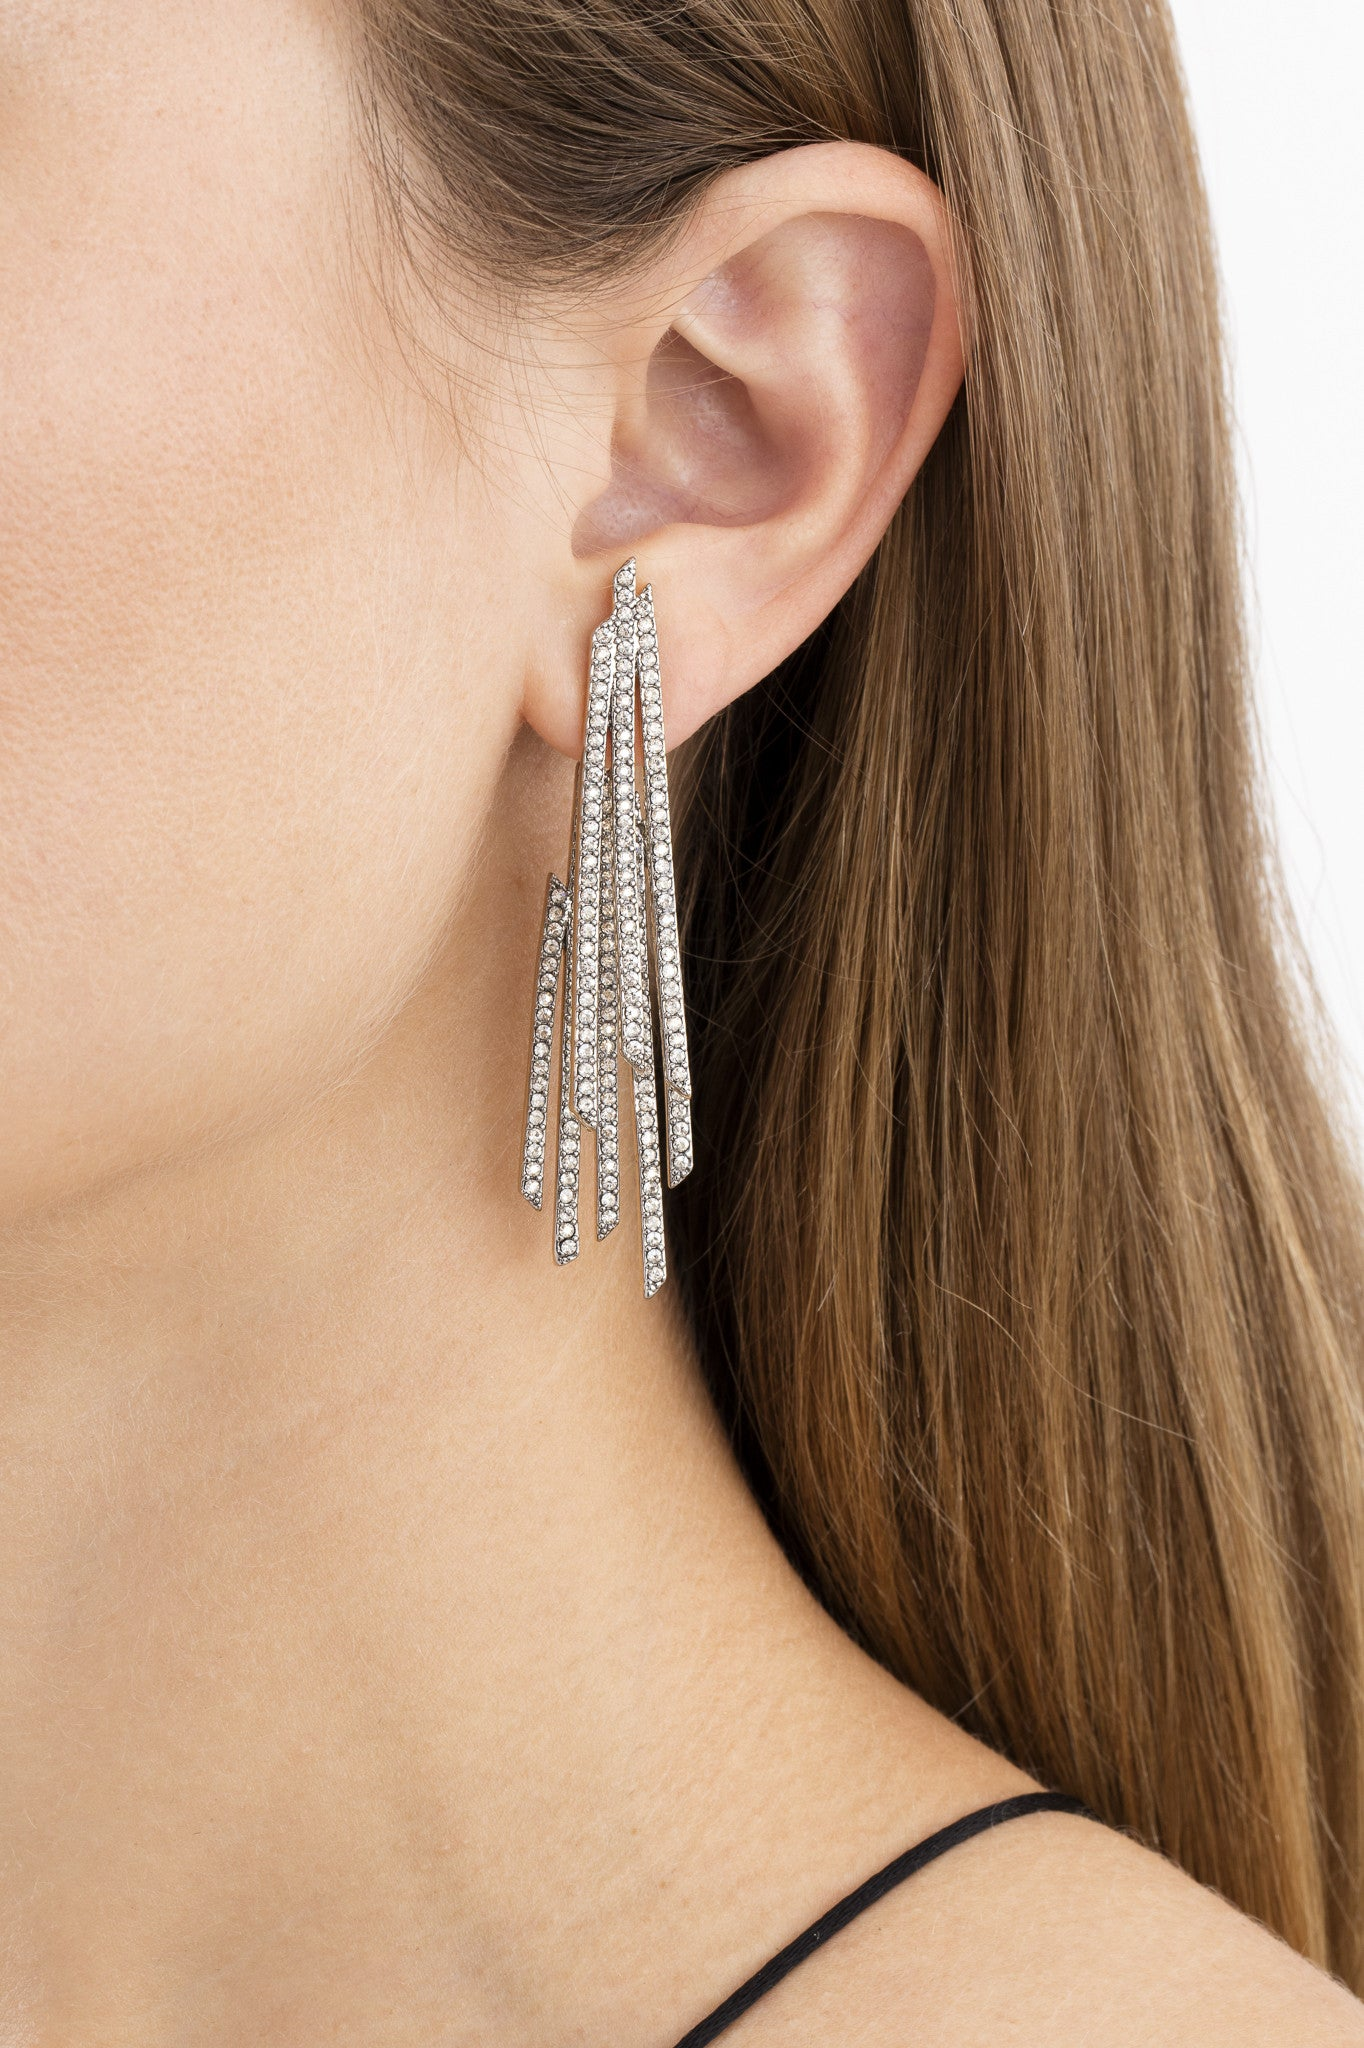 Spark Ear Jacket by Sarah Magid Jewelry